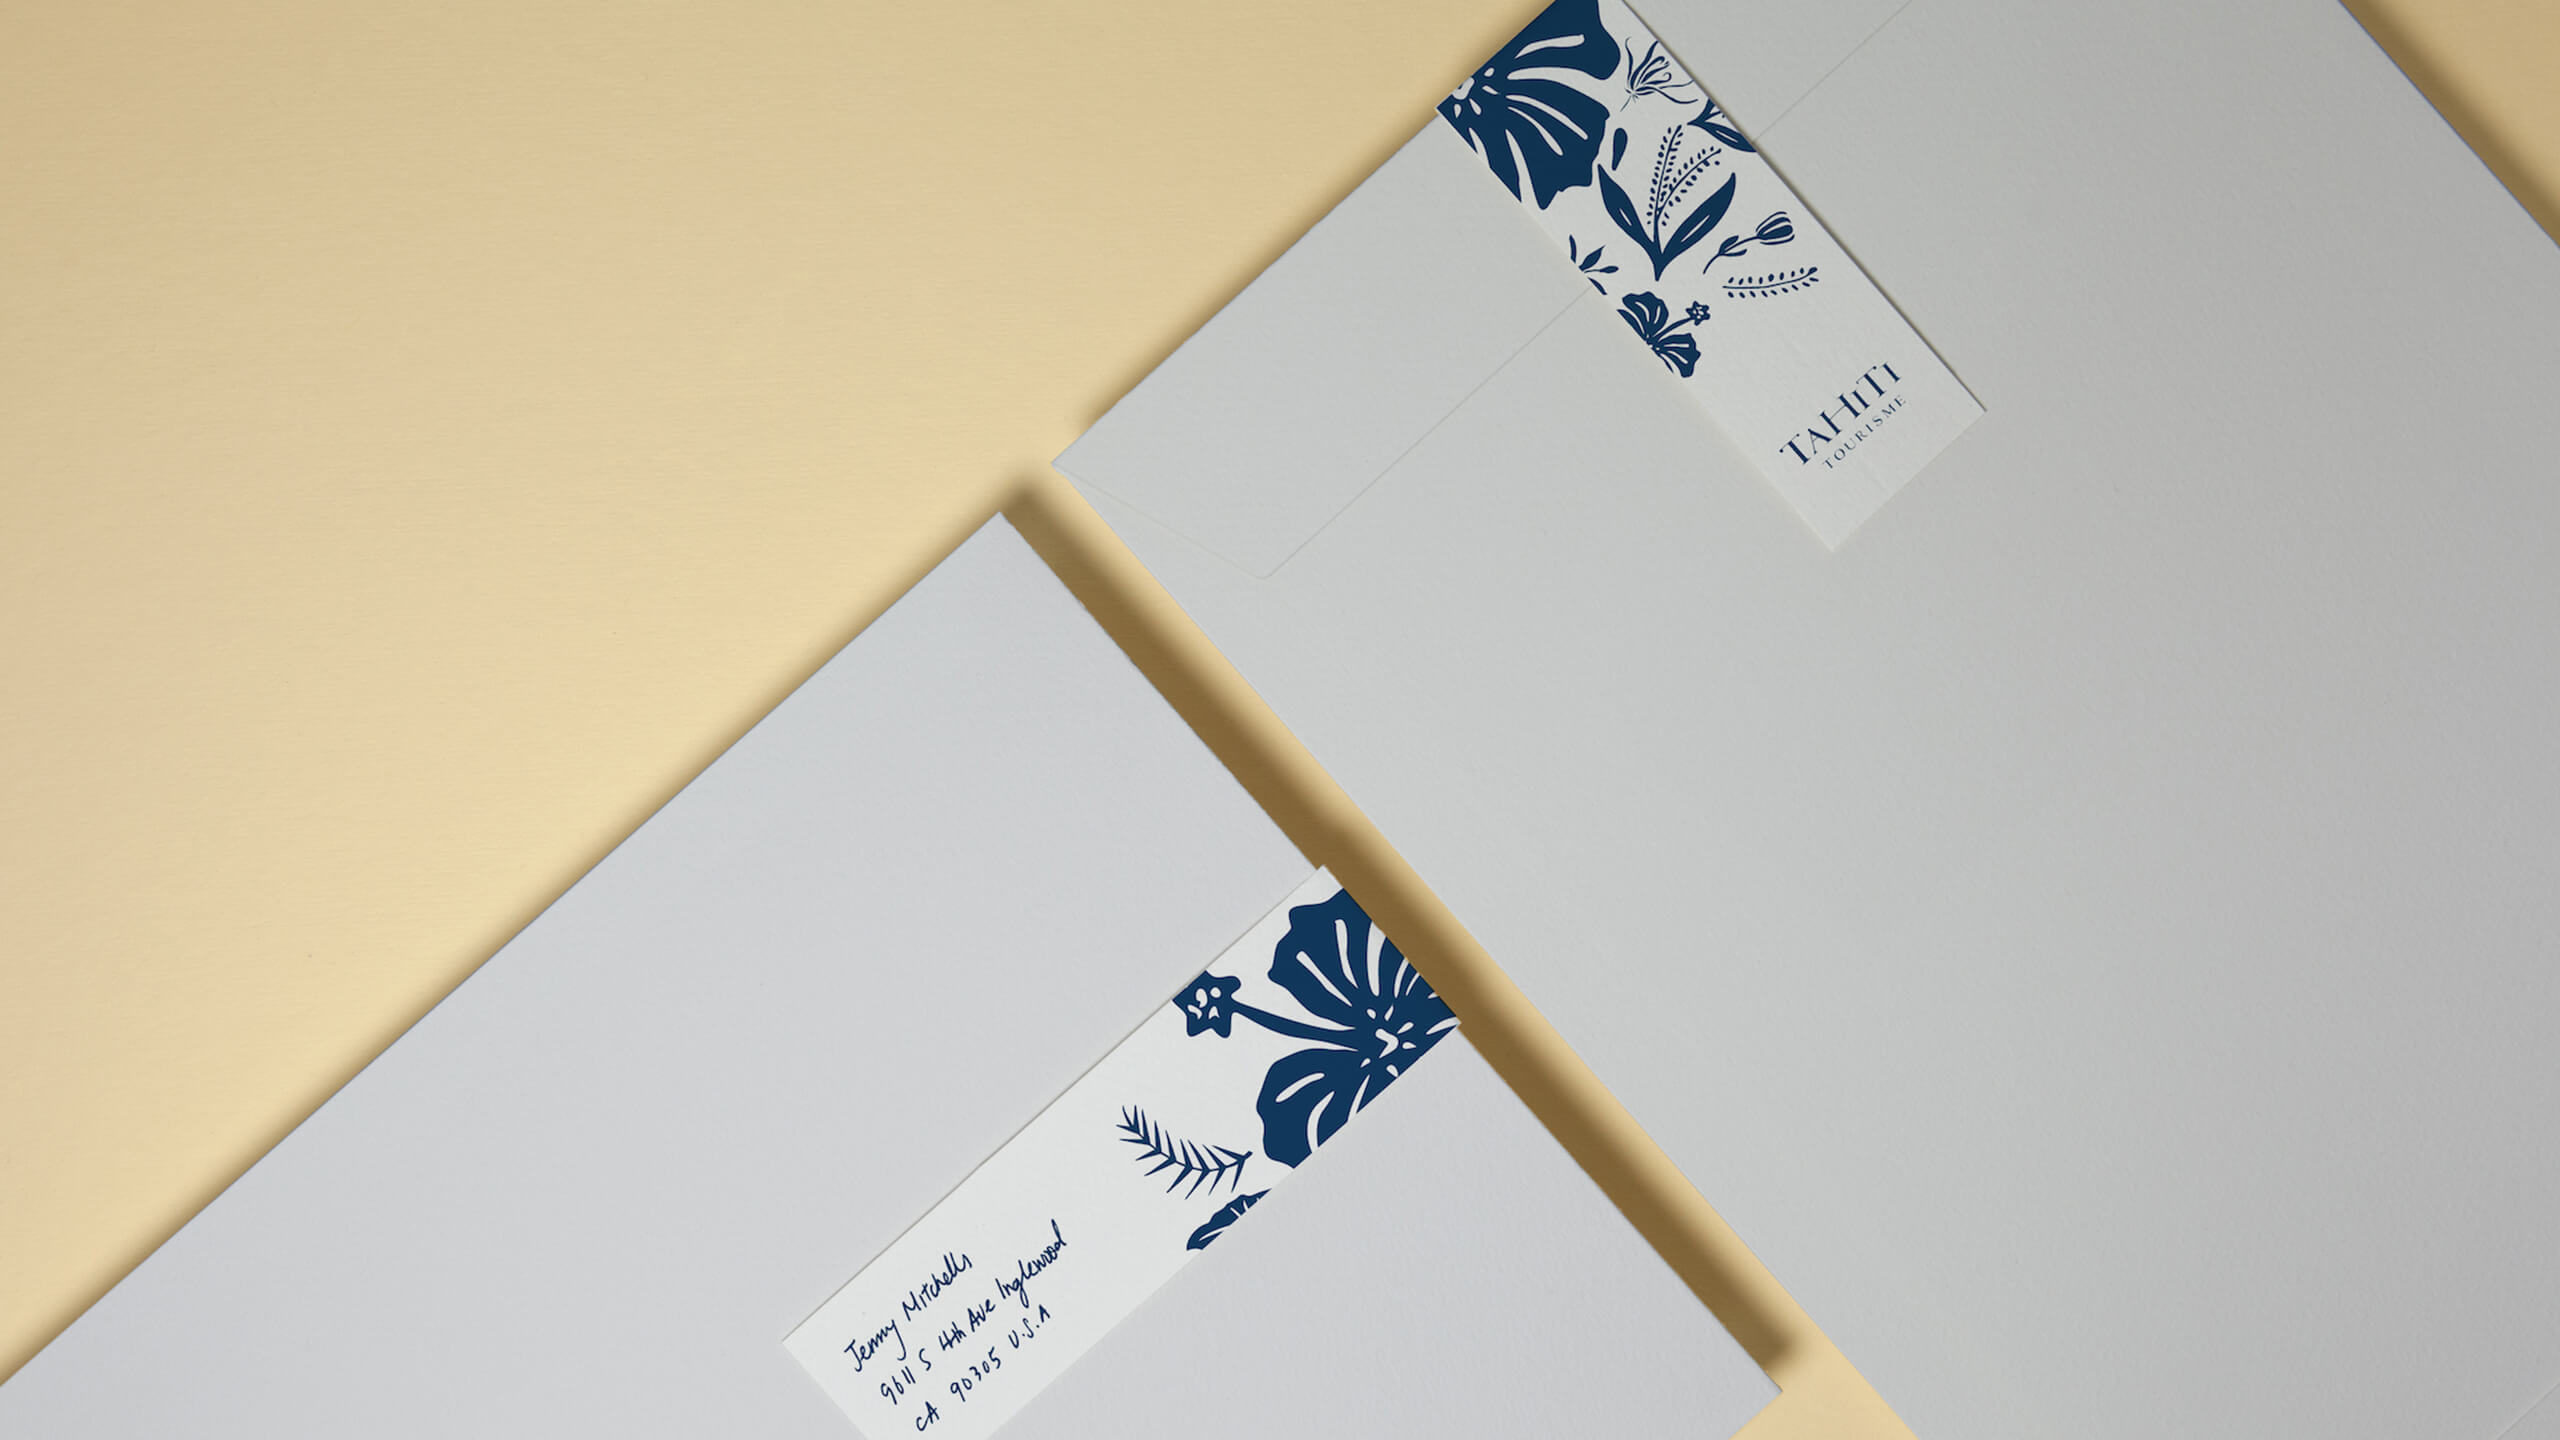 tahiti_branding_strategy_the_branding_journal_4